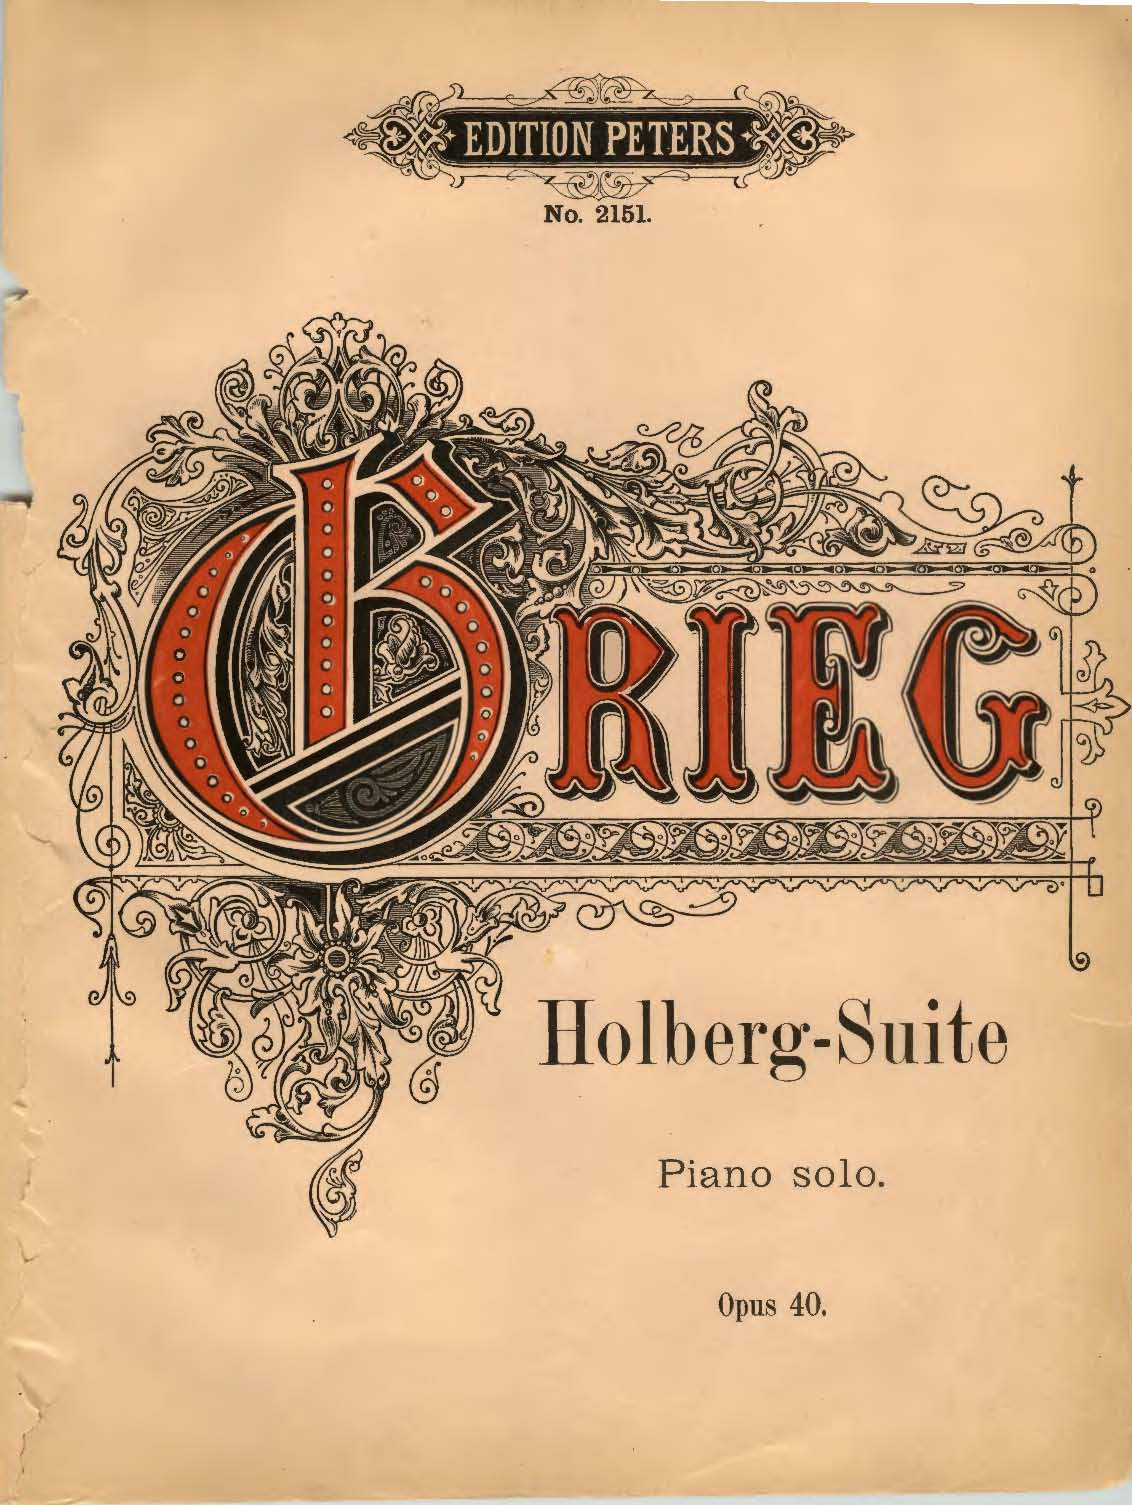 Peters edition of Grieg's From Holberg's Time